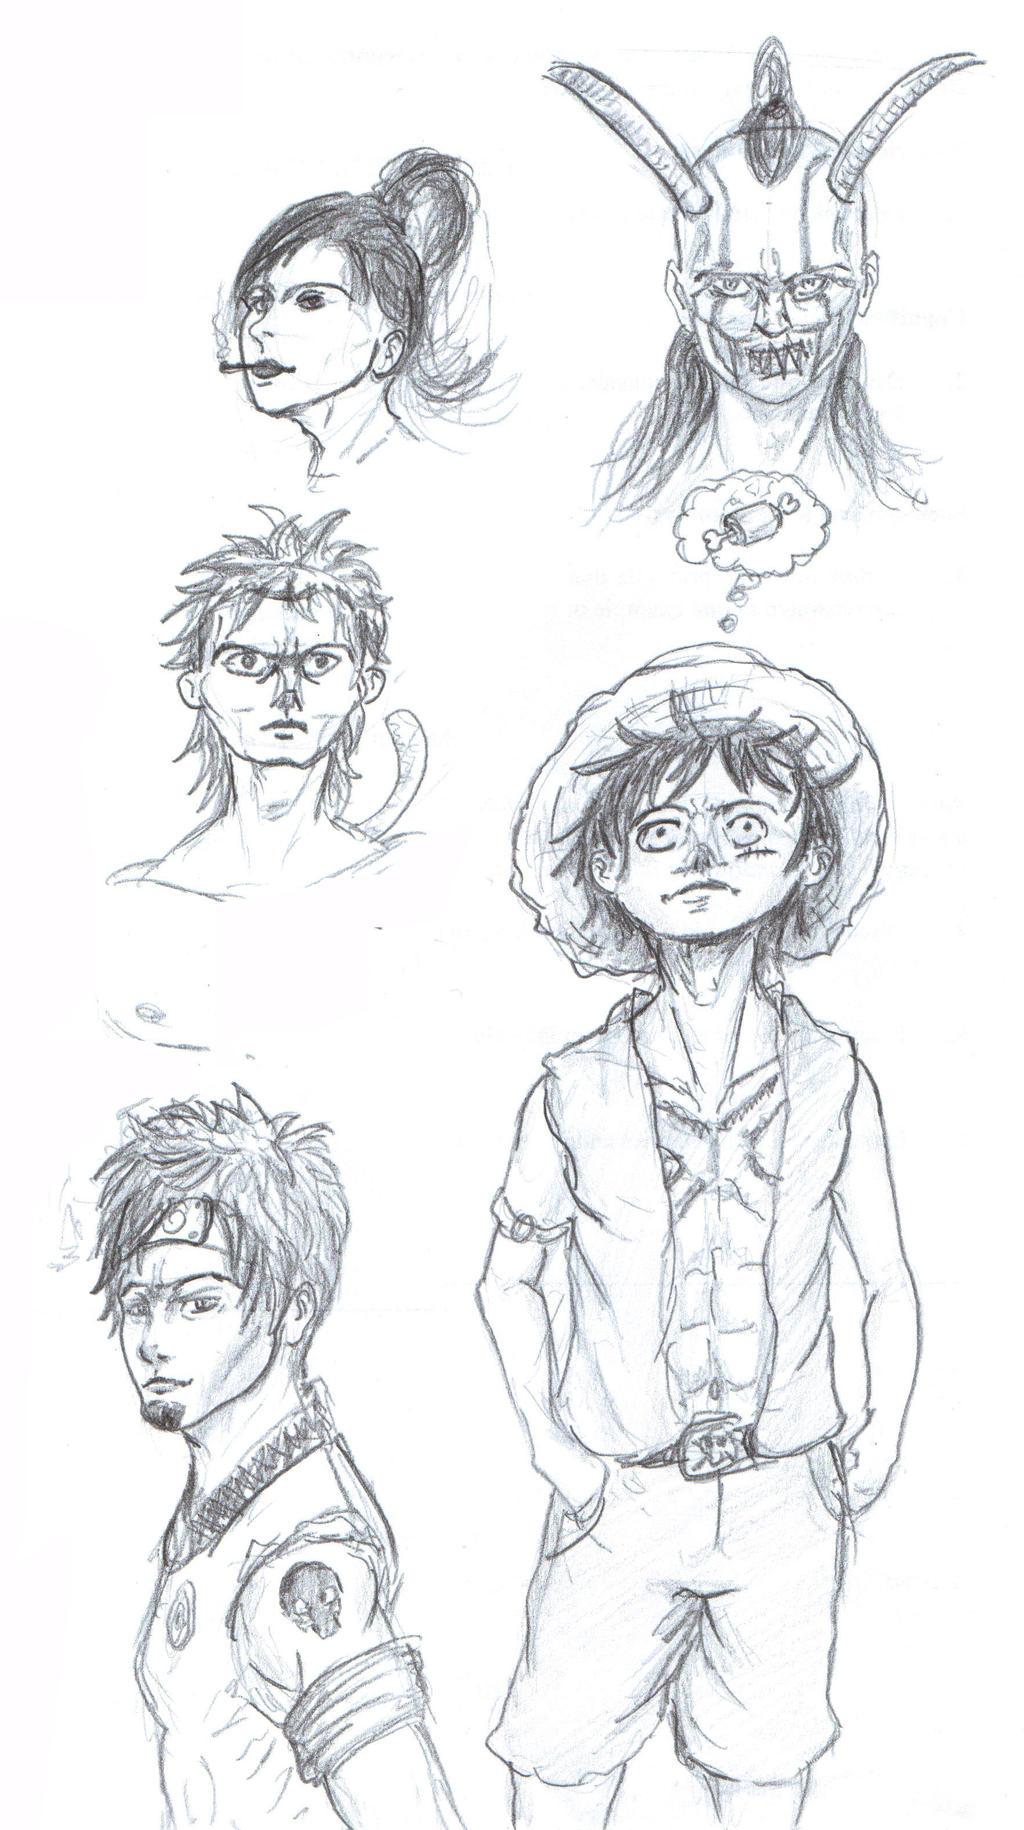 Sketches done in school - Sketch collection. by IRCSS